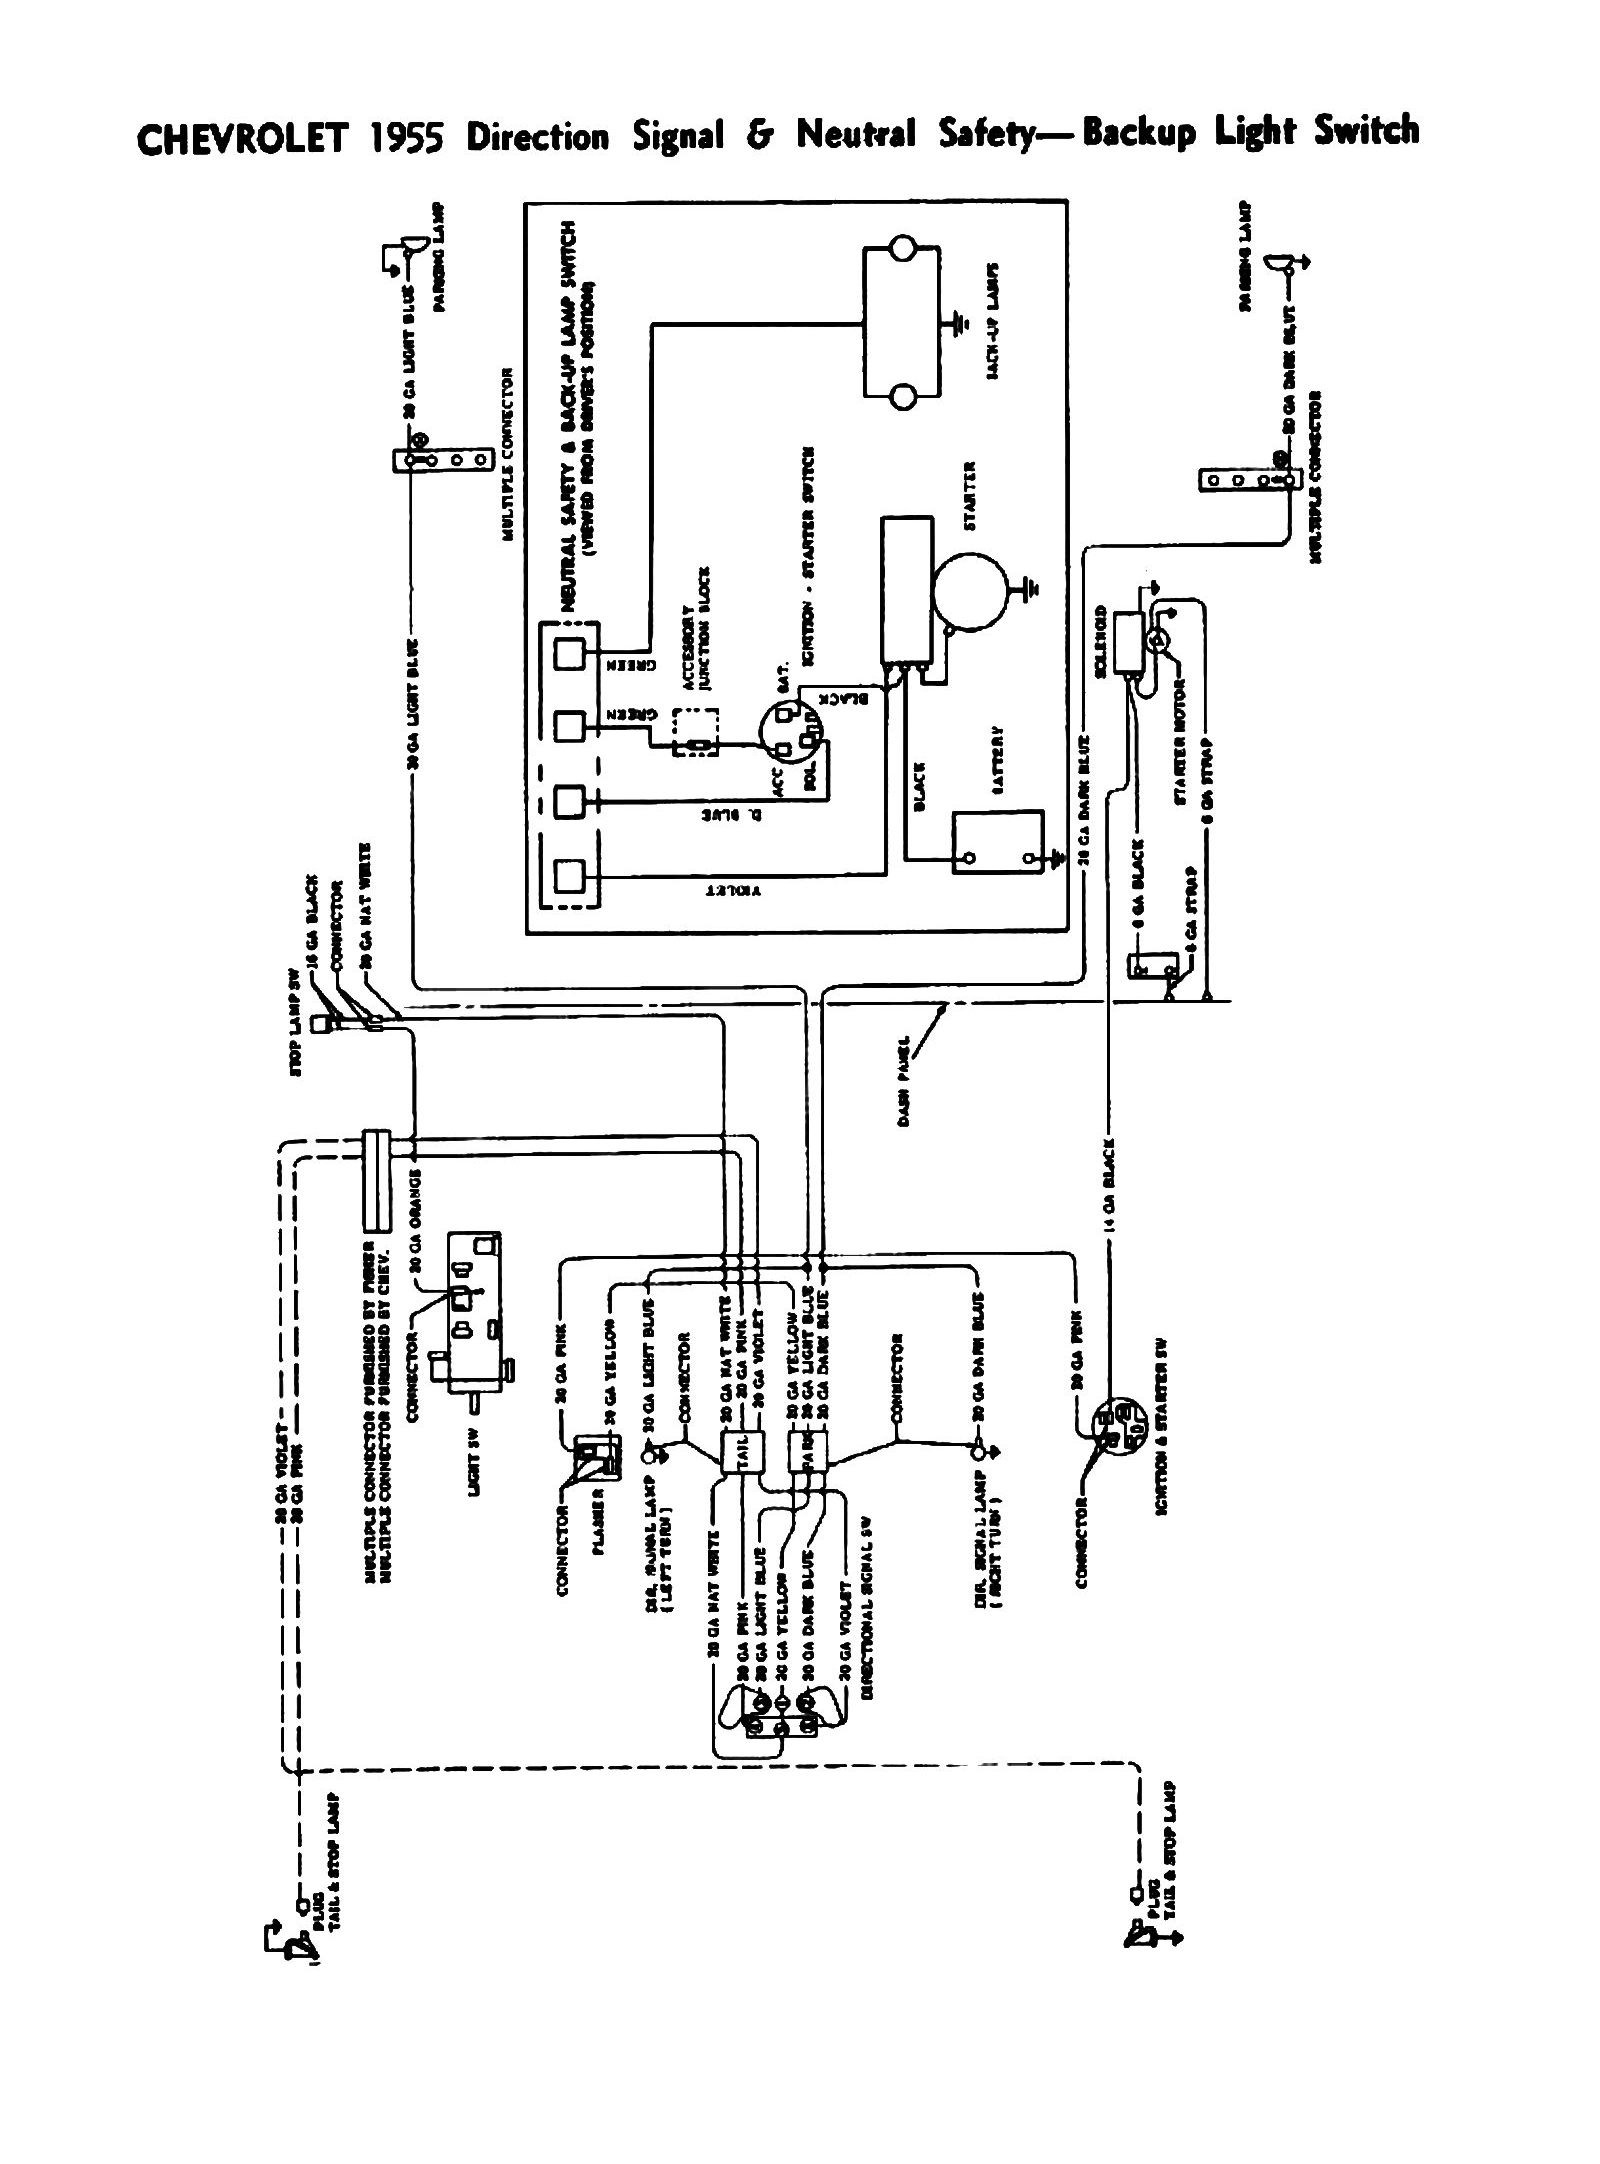 wiring diagram for 1970 chevy truck